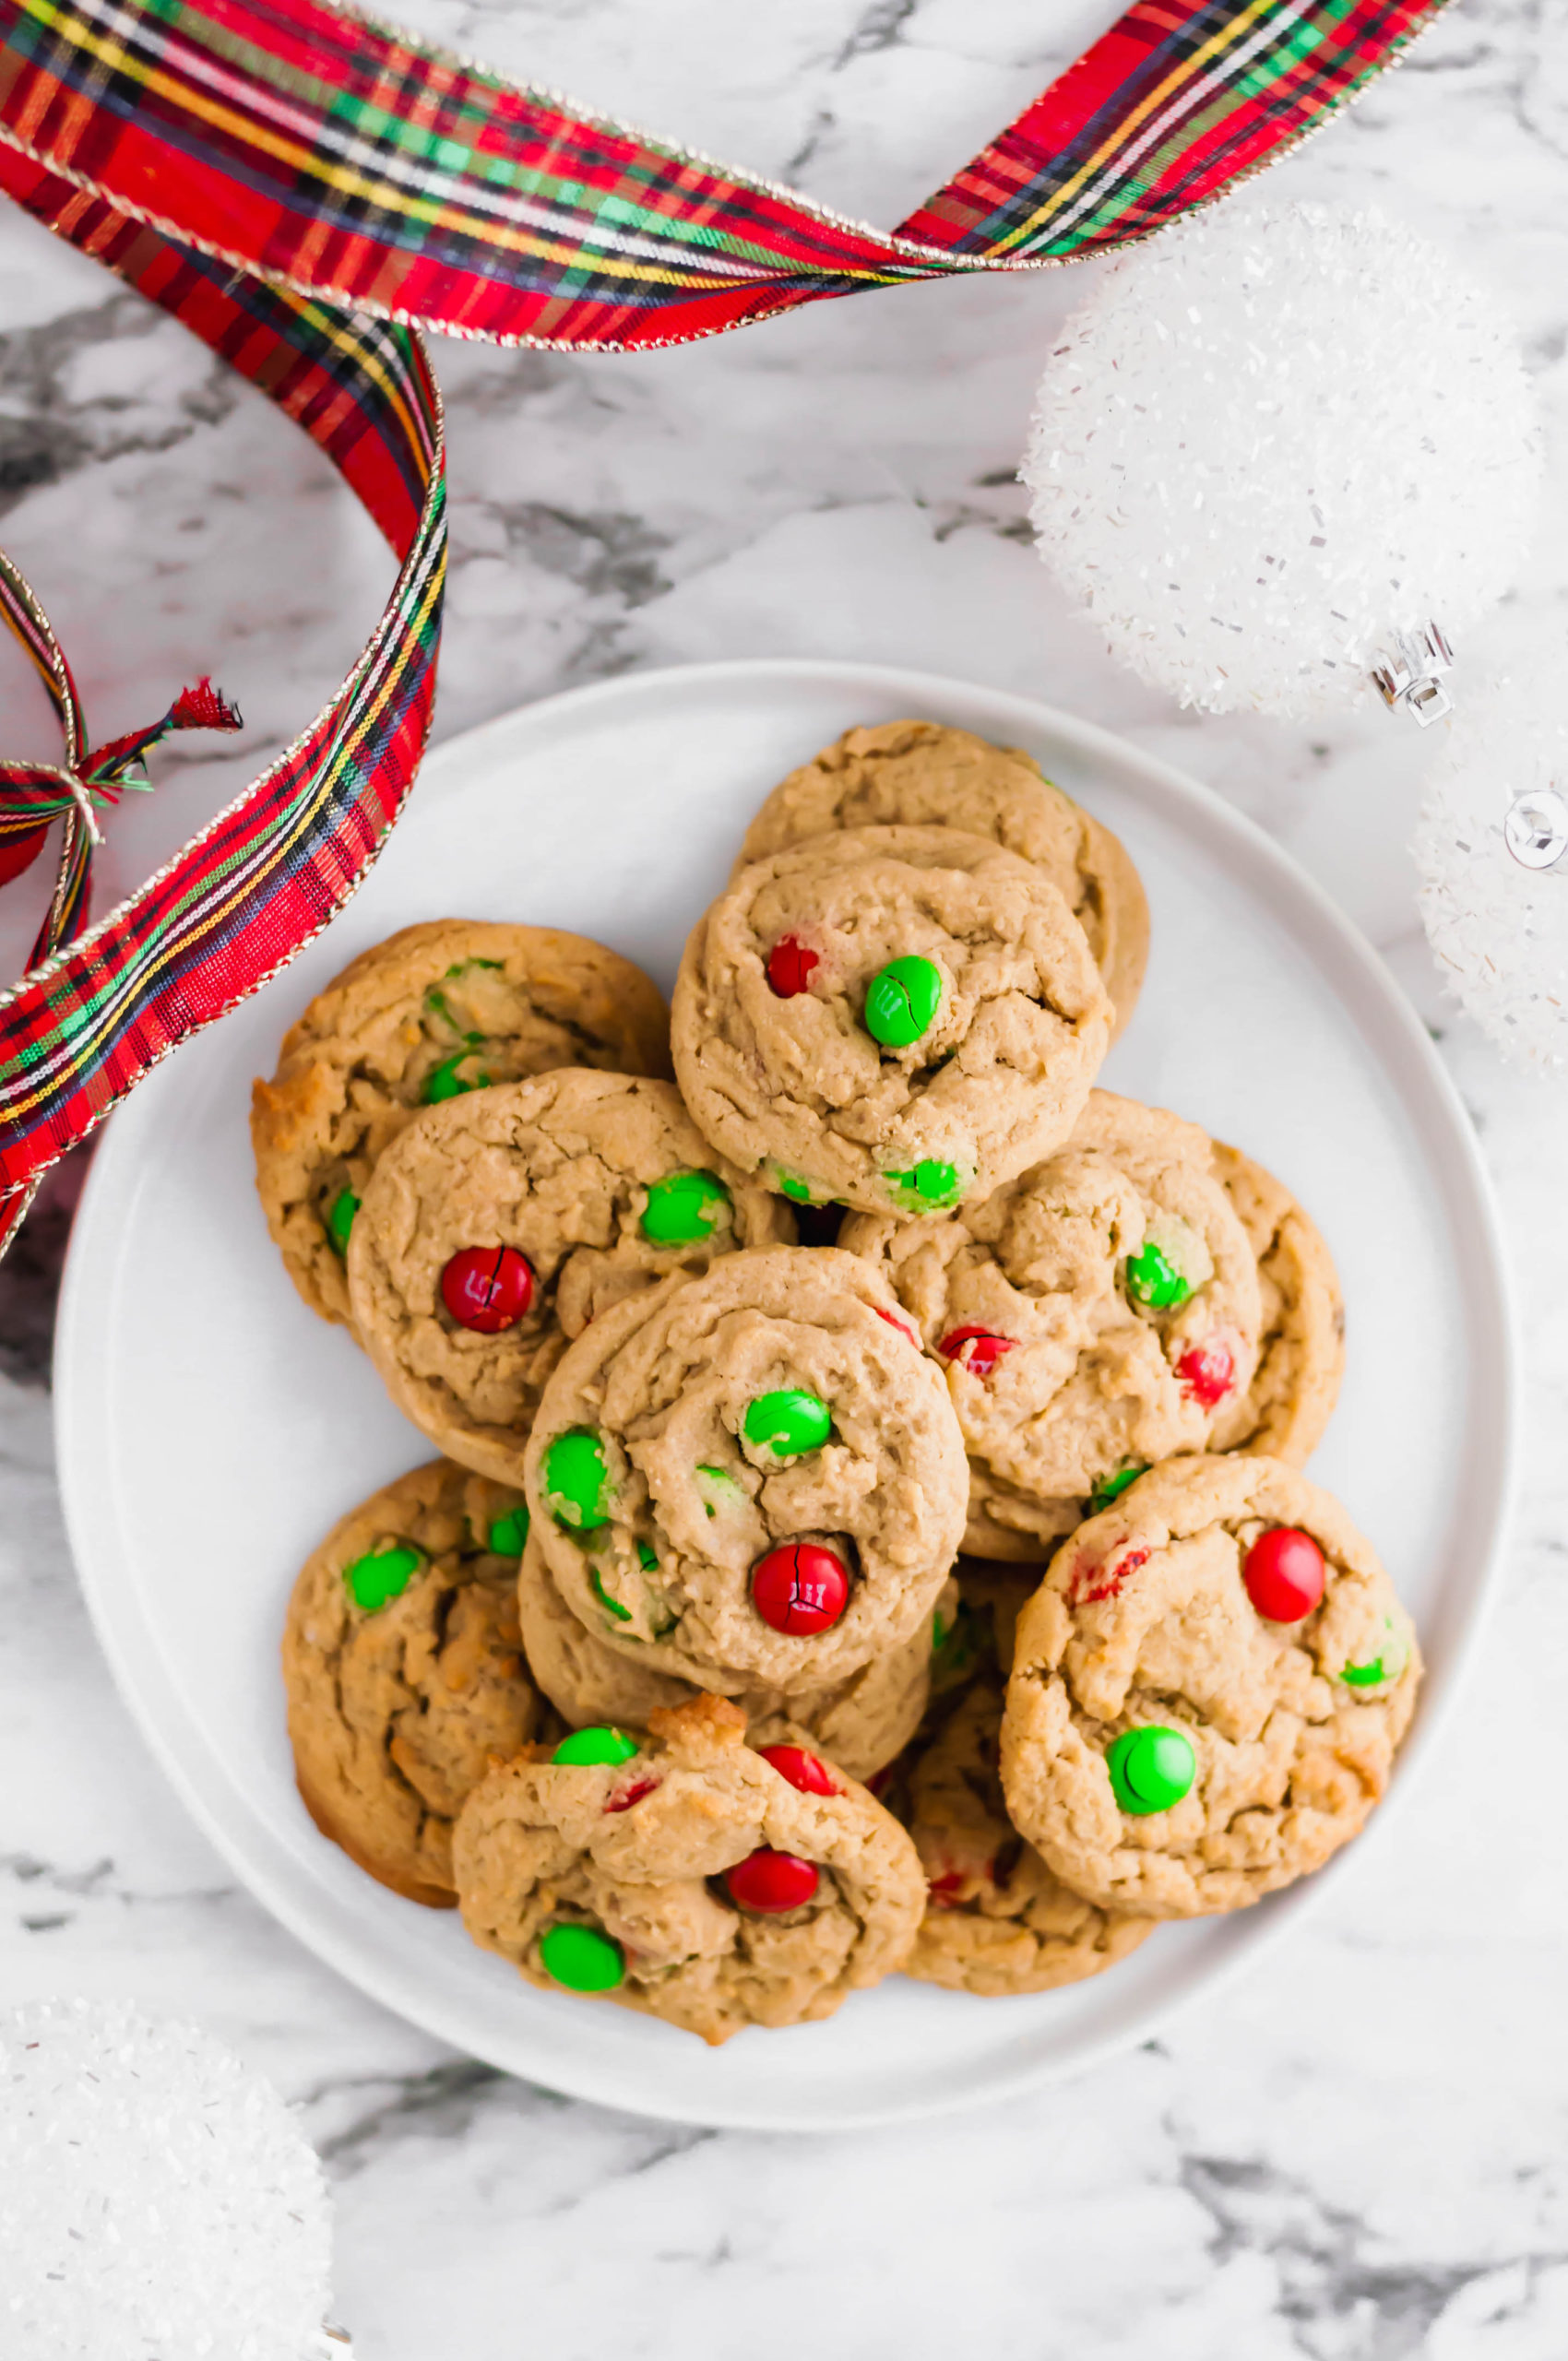 The classic peanut butter and chocolate combination is featured in these delicious Peanut Butter M&M Cookies. Perfect for all your holiday baking.